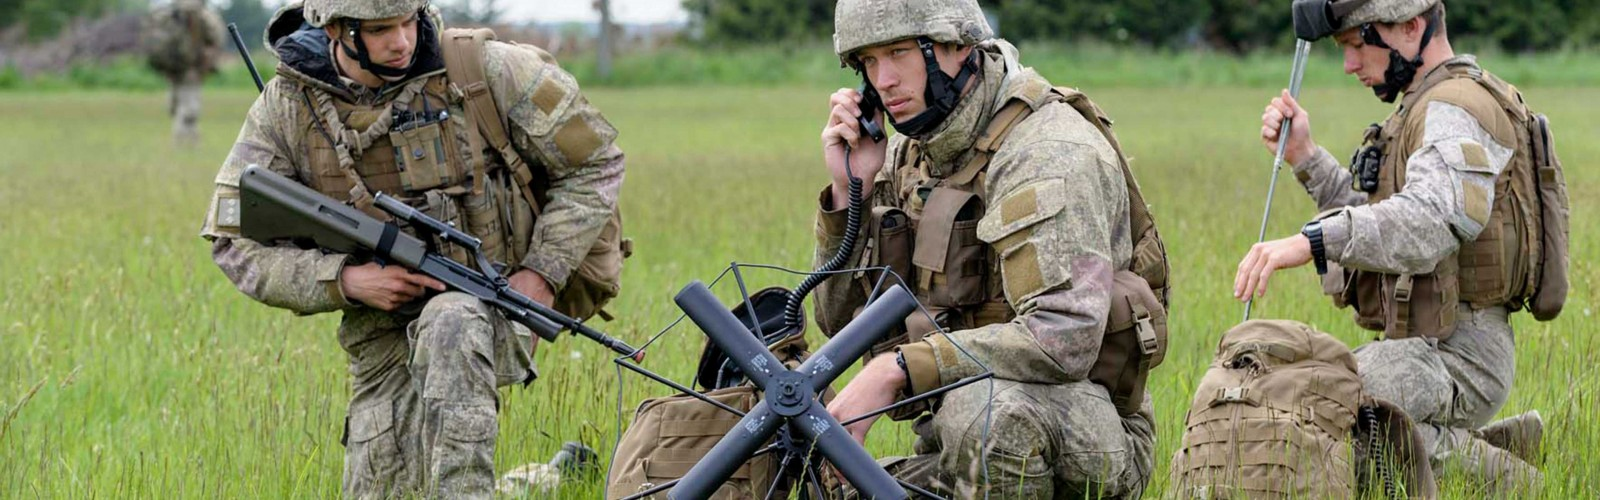 Army Communication Systems Operator full width